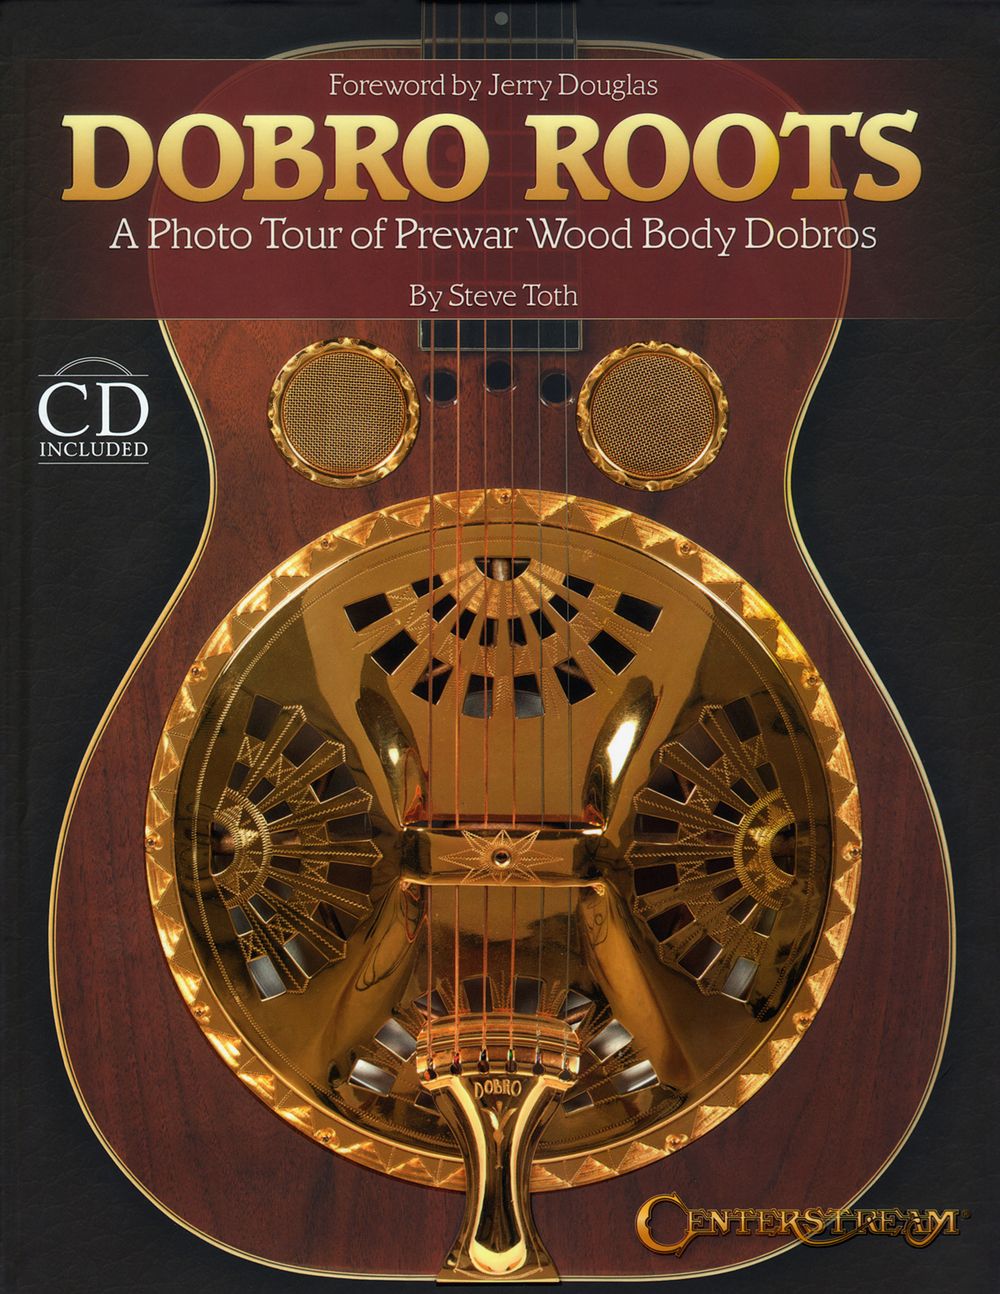 Dobro Roots - A Photo Tour of Prewar Wood Body Dobros (with CD)